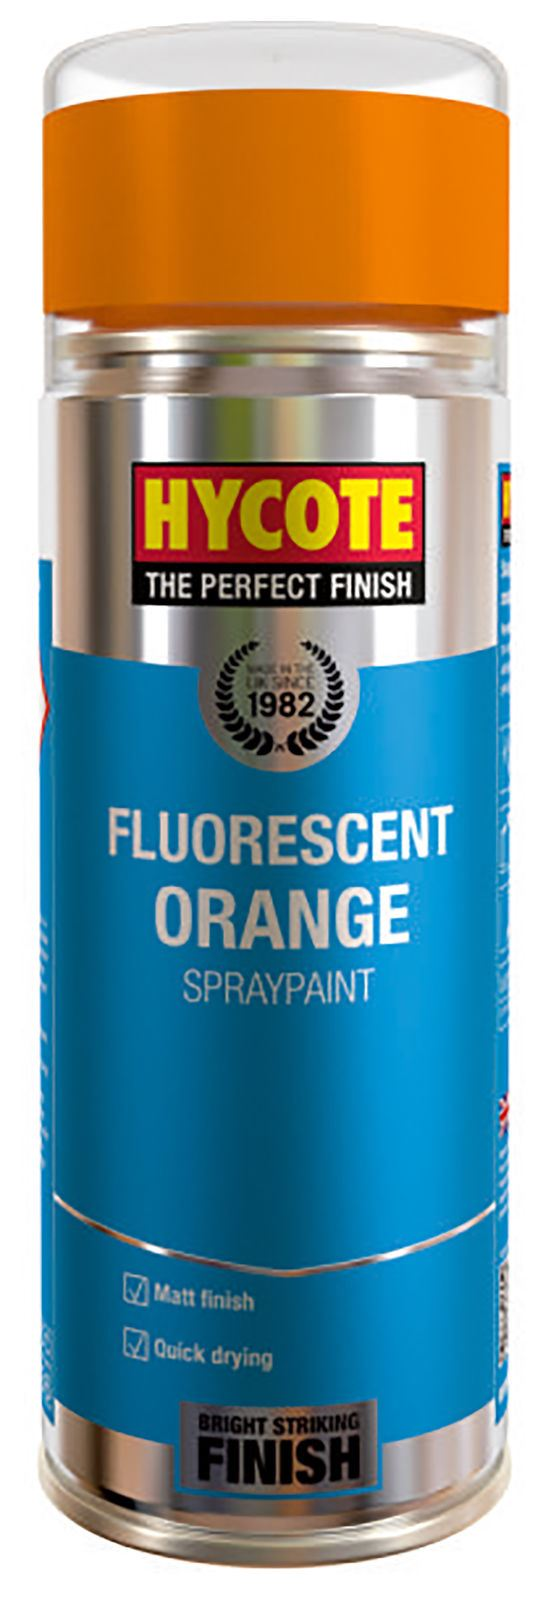 Hycote Fluorescent Orange Paint - 400ml